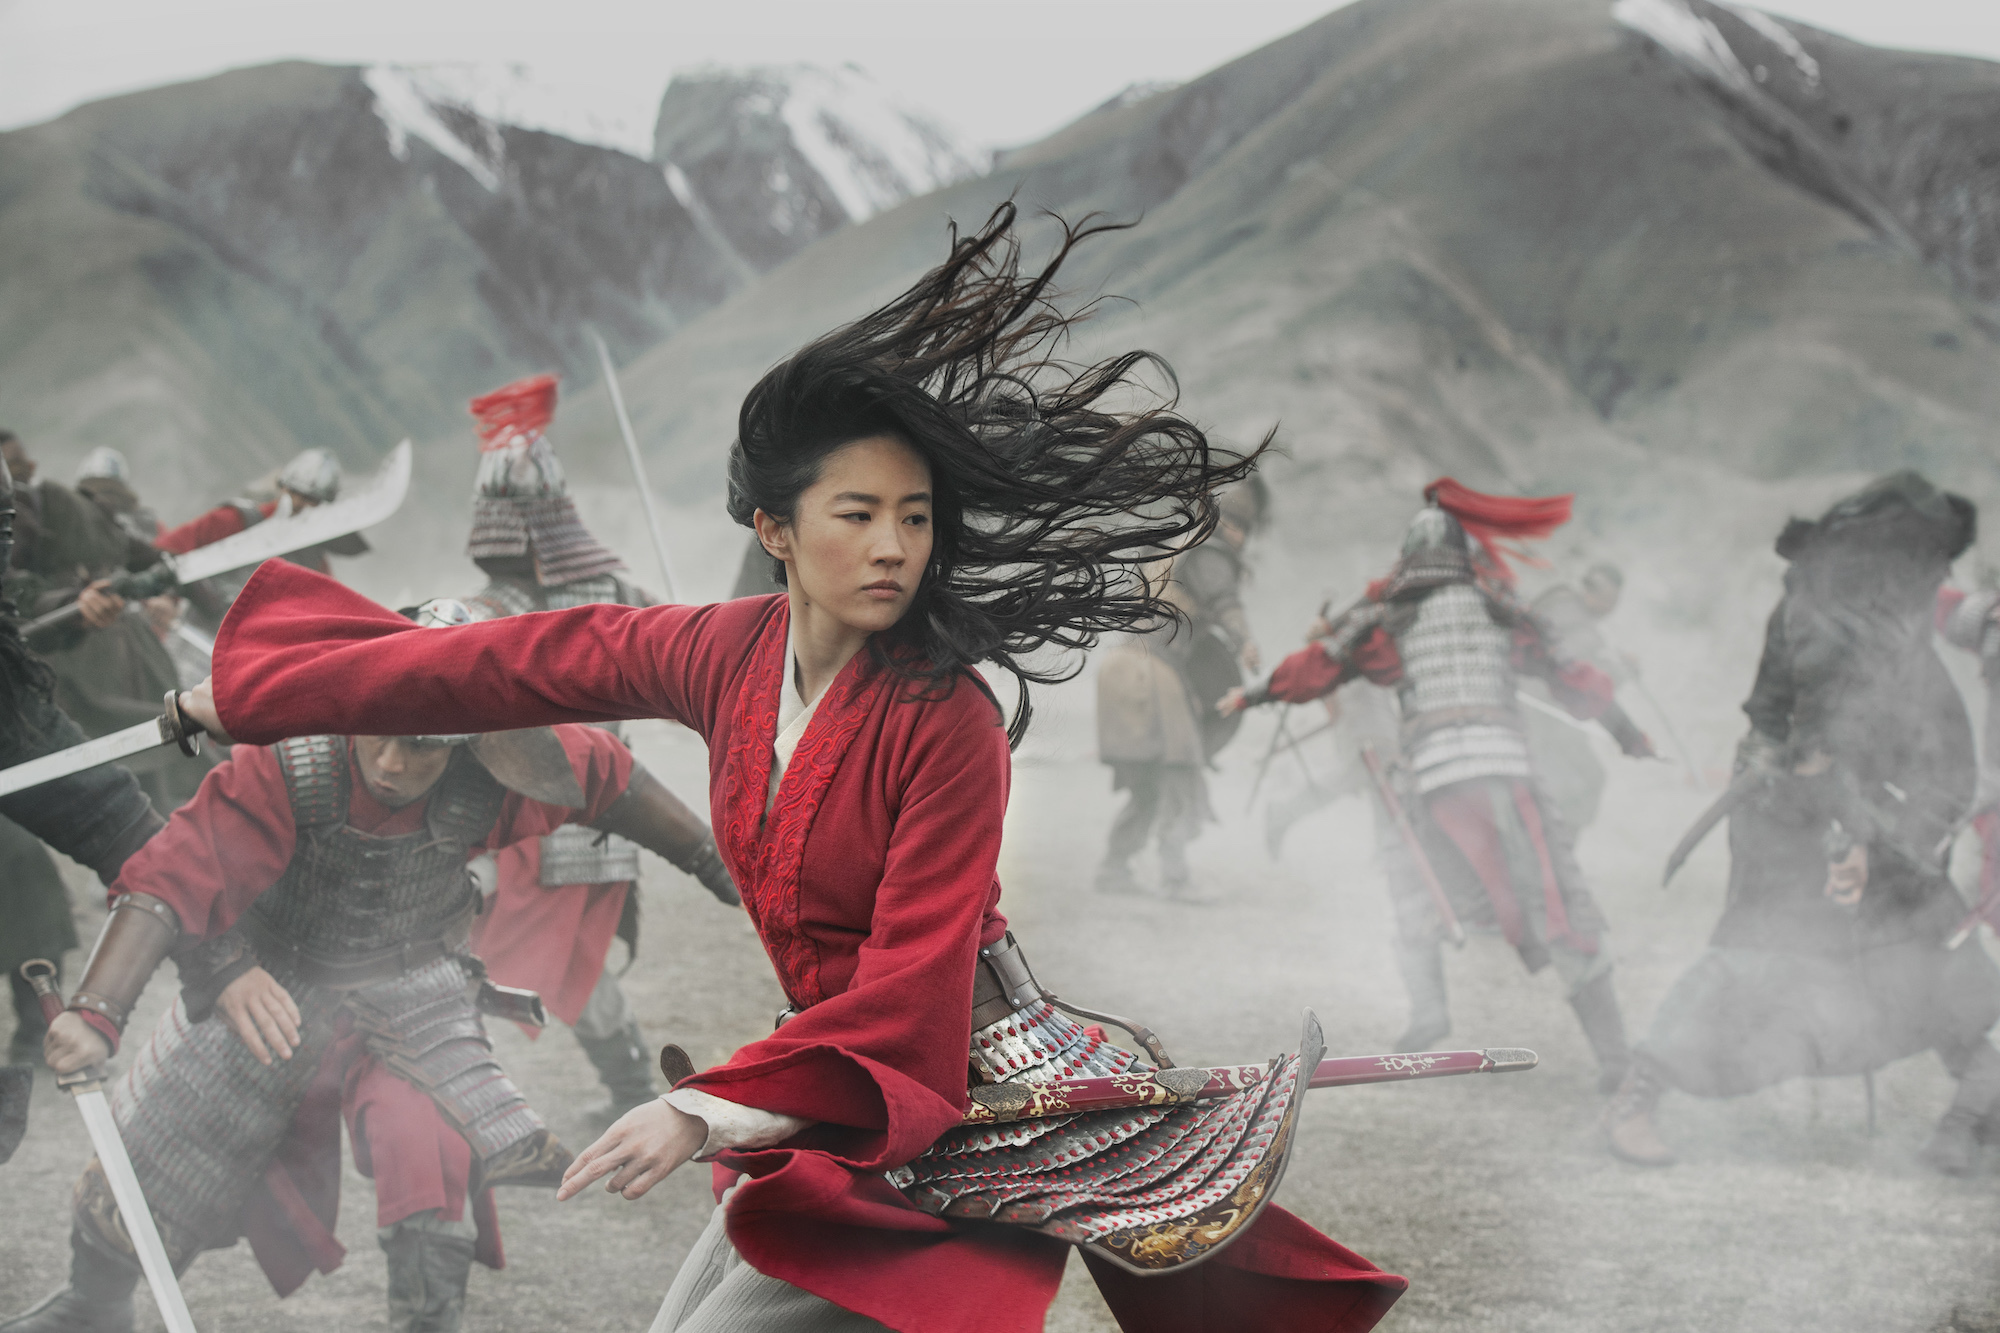 Mulan How Disney S Live Action Version Differs From The Classic Animated Film The Washington Post